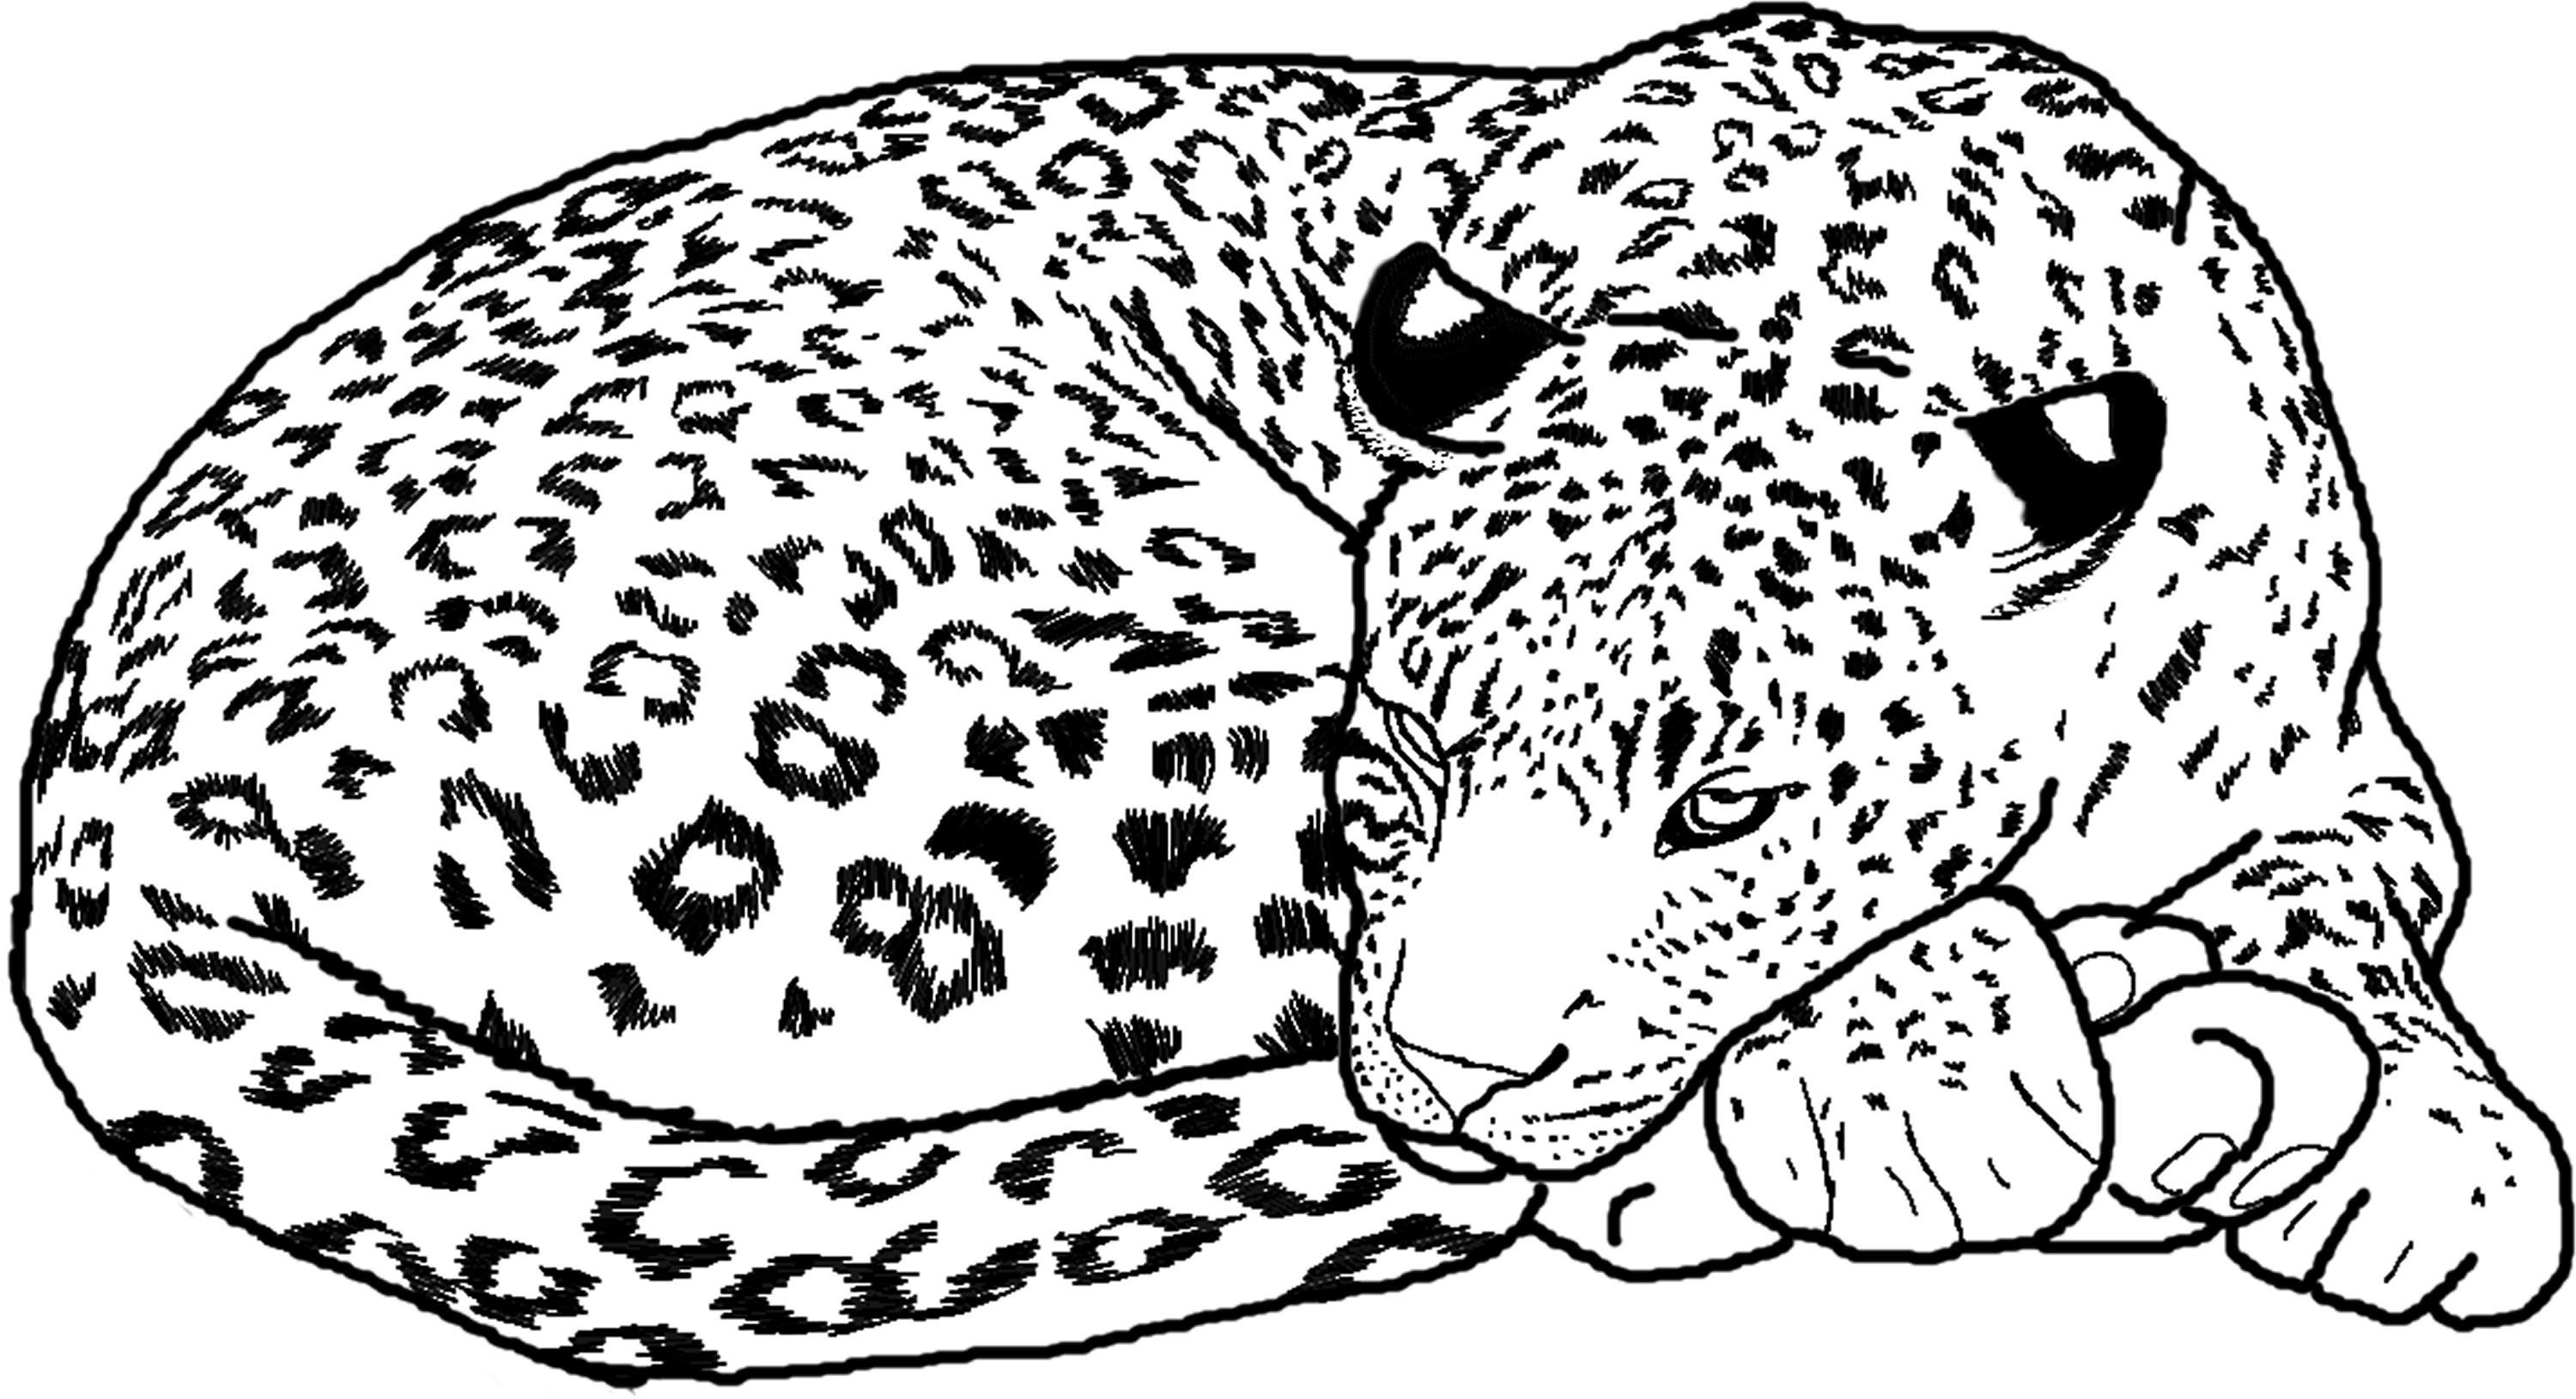 Cheetah Coloring Pages Zoo Animal Coloring Pages Coloring Pages For Kids Animal Coloring Books